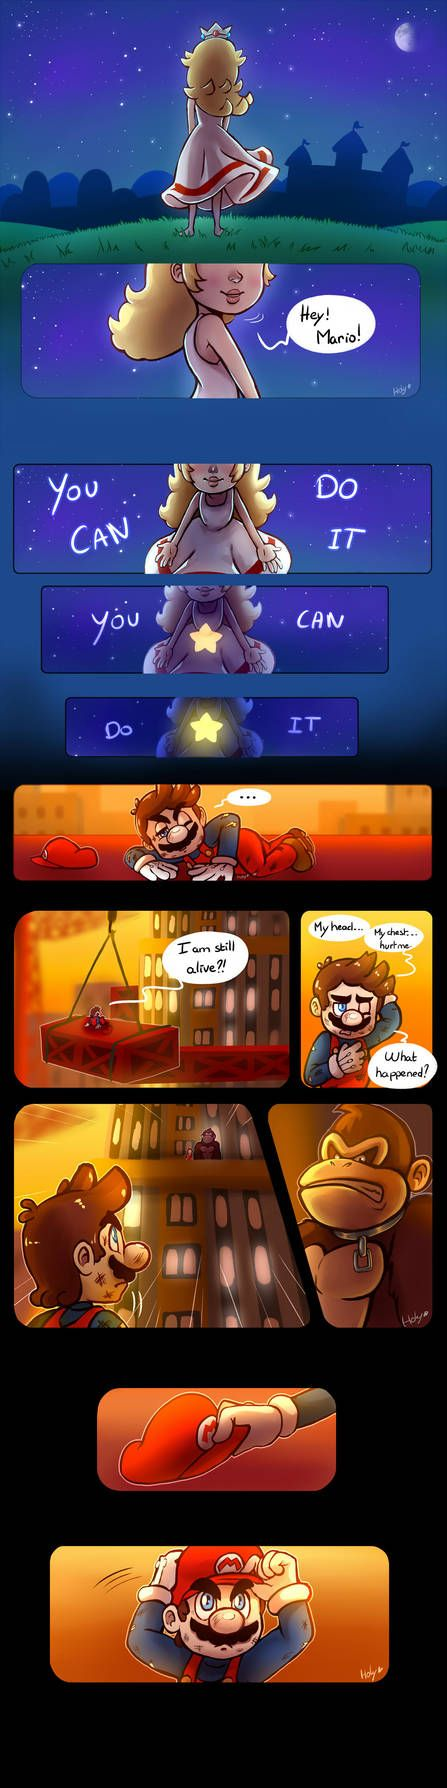 Super Mario's Stories - Part 5 by LC-Holy on DeviantArt